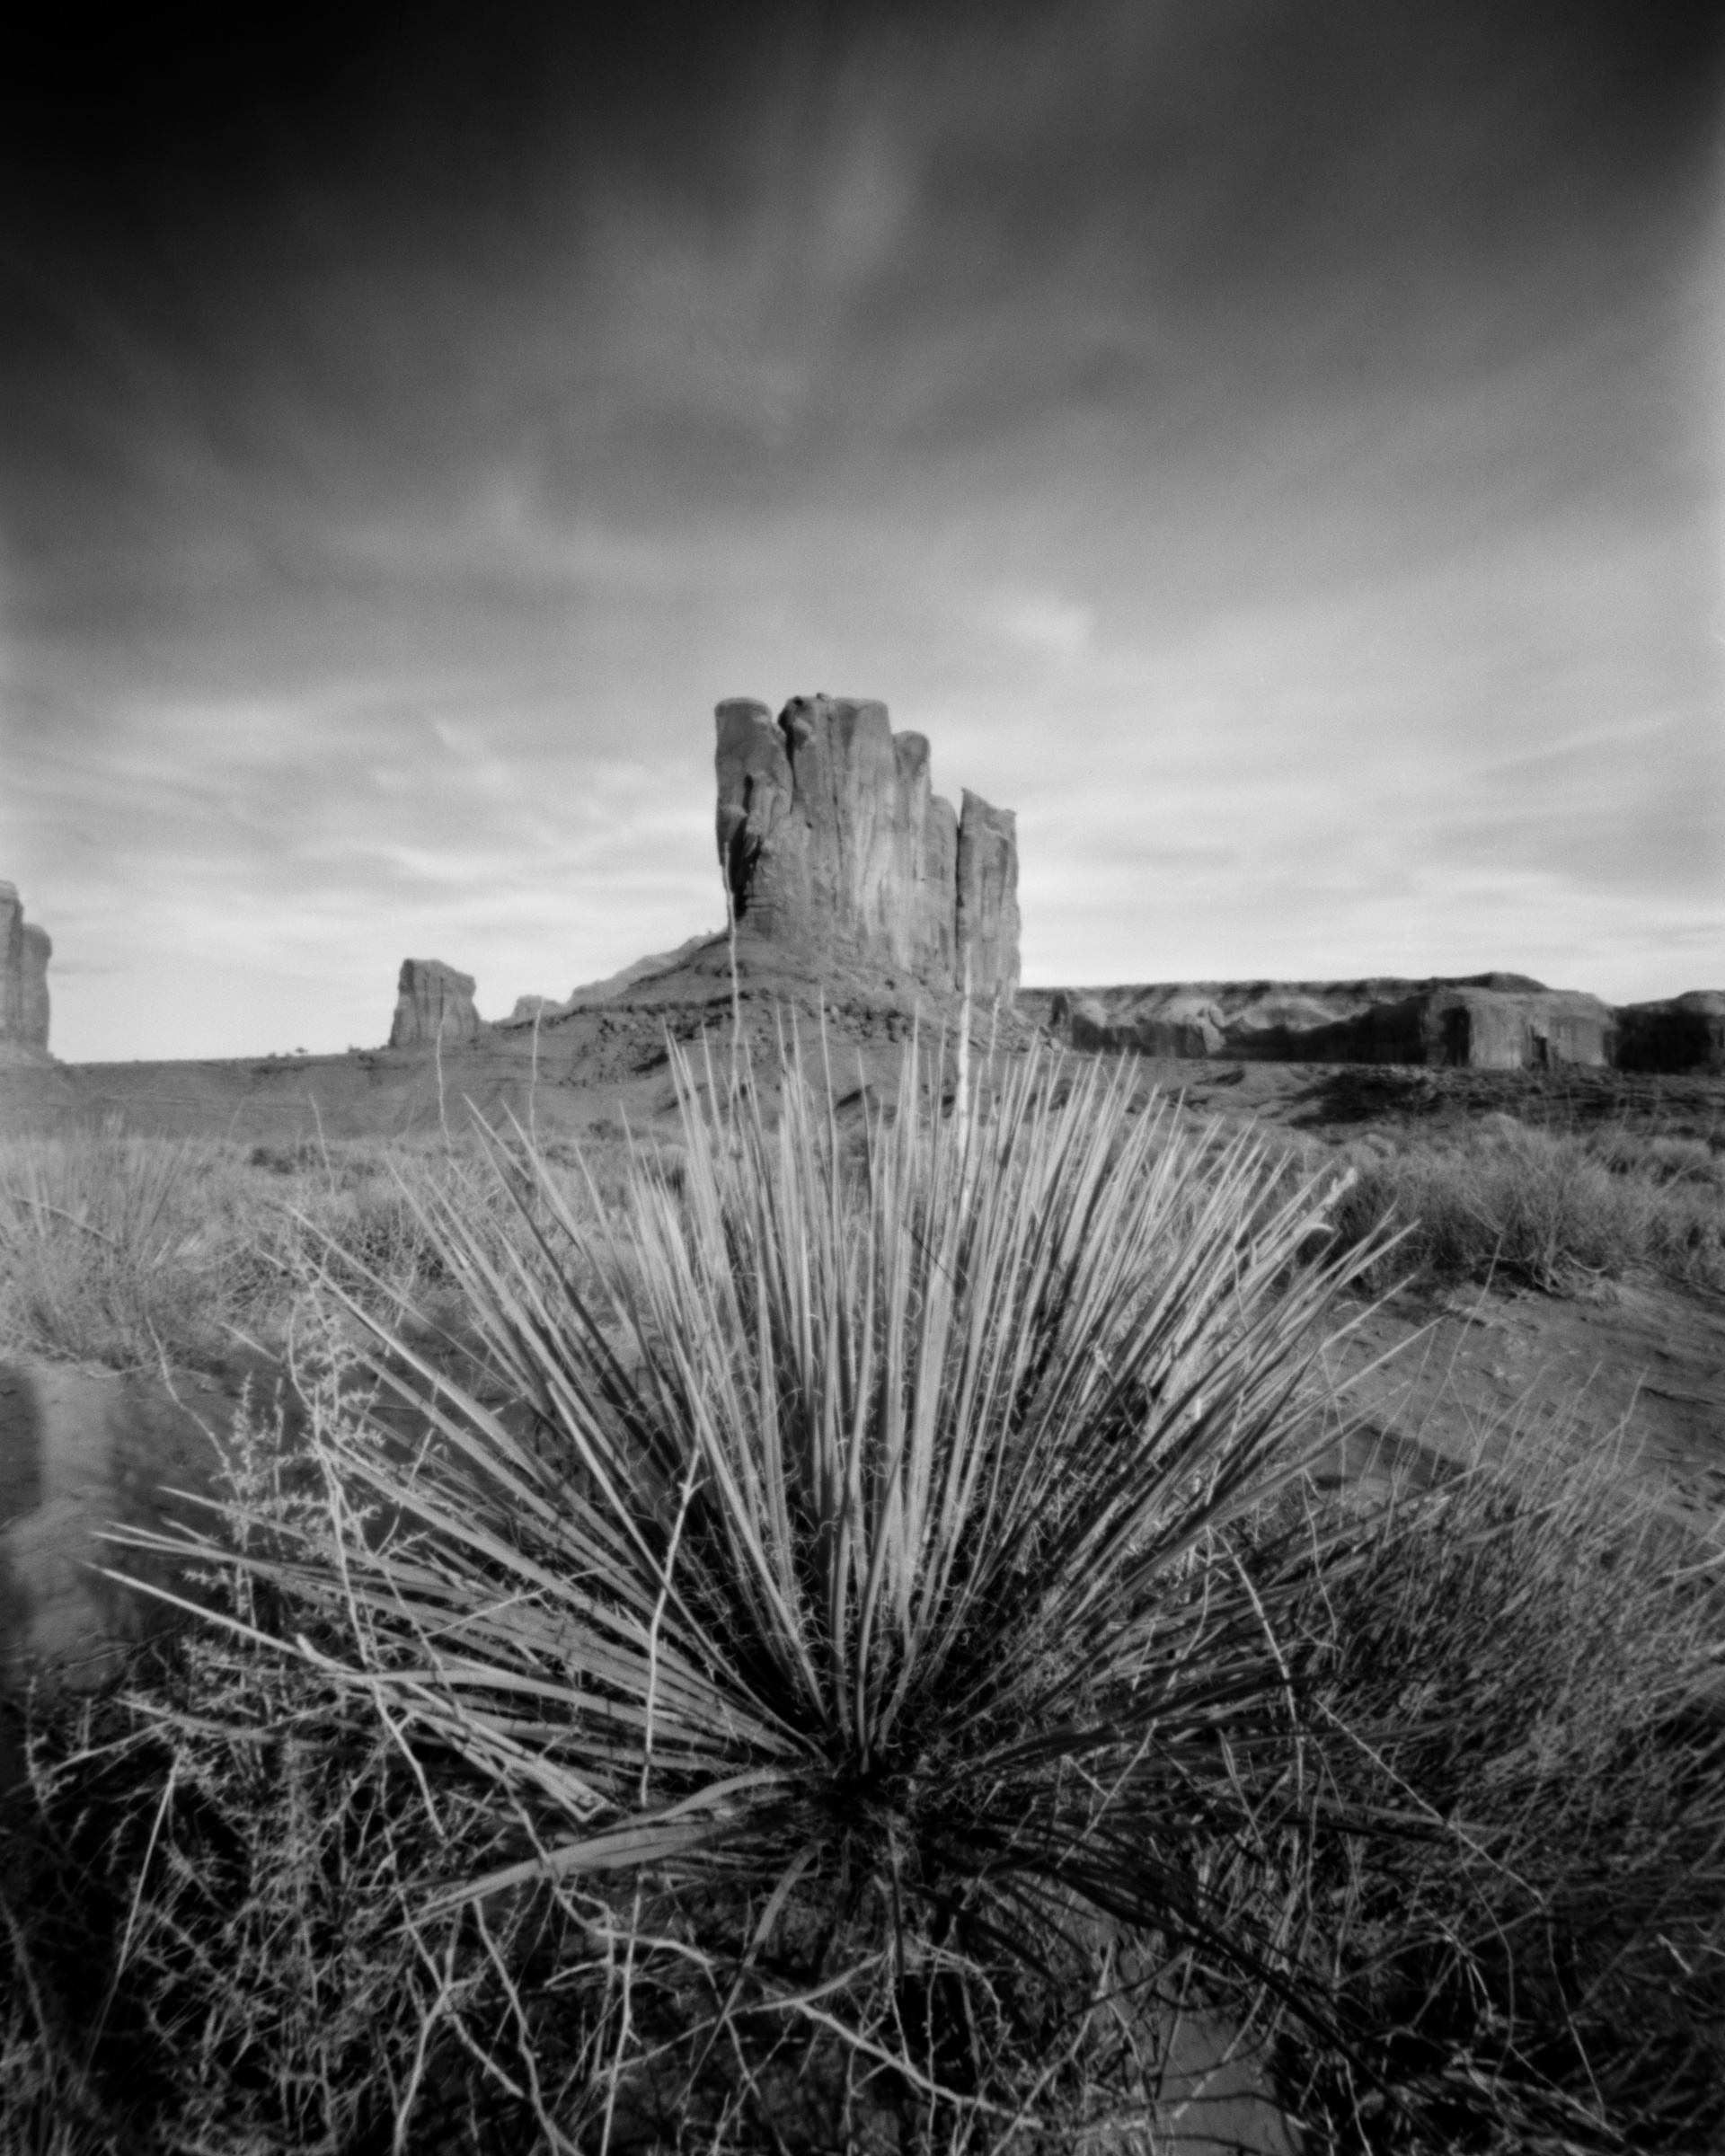 Yuan_Monument Valley Navajo Tribal Park_20171130_001-Edit copy.jpg